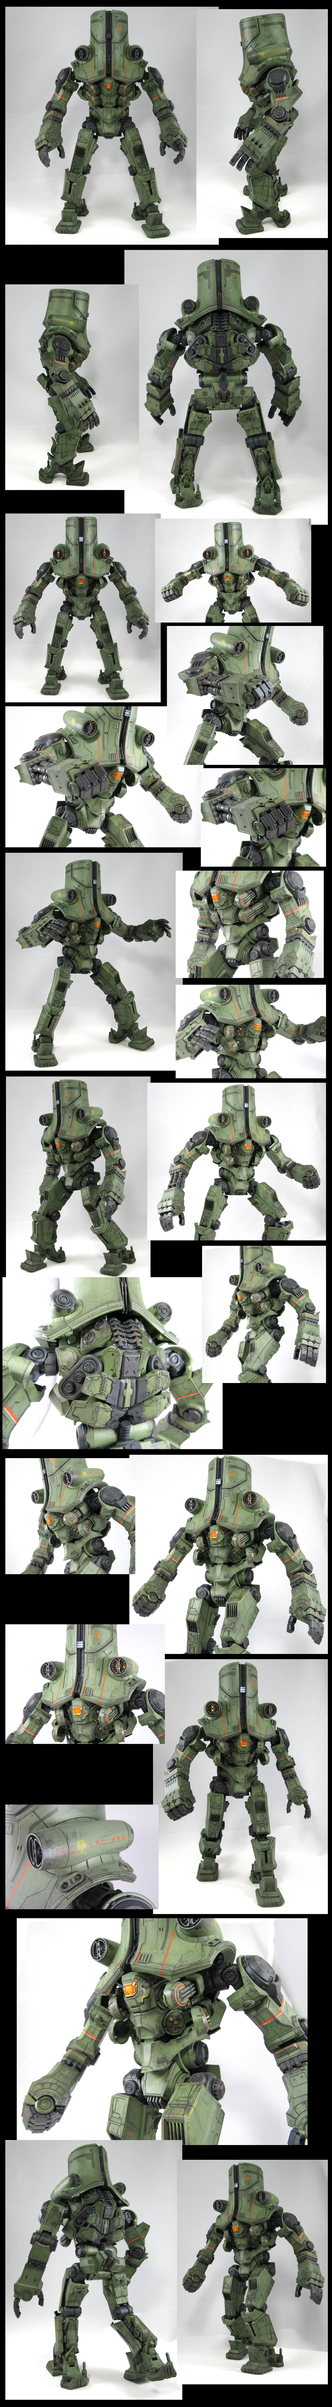 Cherno Alpha - Plamax Model kit - Painted build by Zeurel